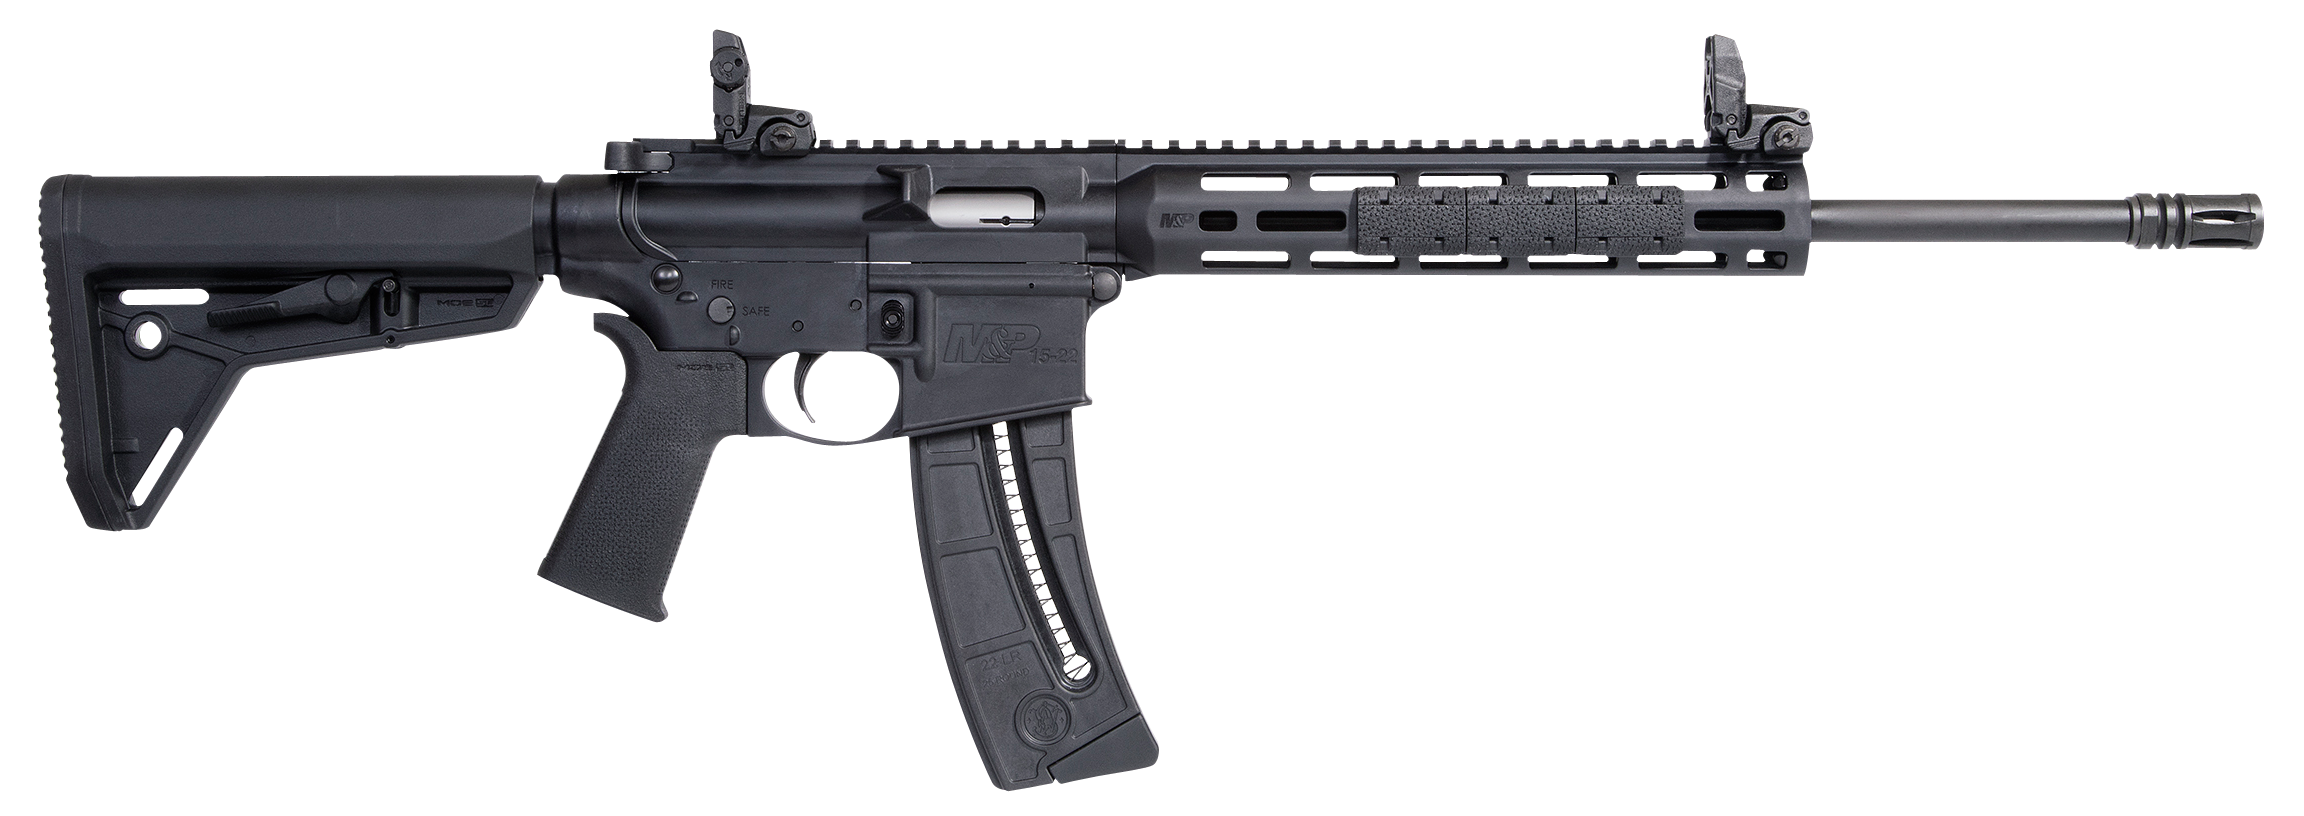 Smith & Wesson  M&P15-22-img-0